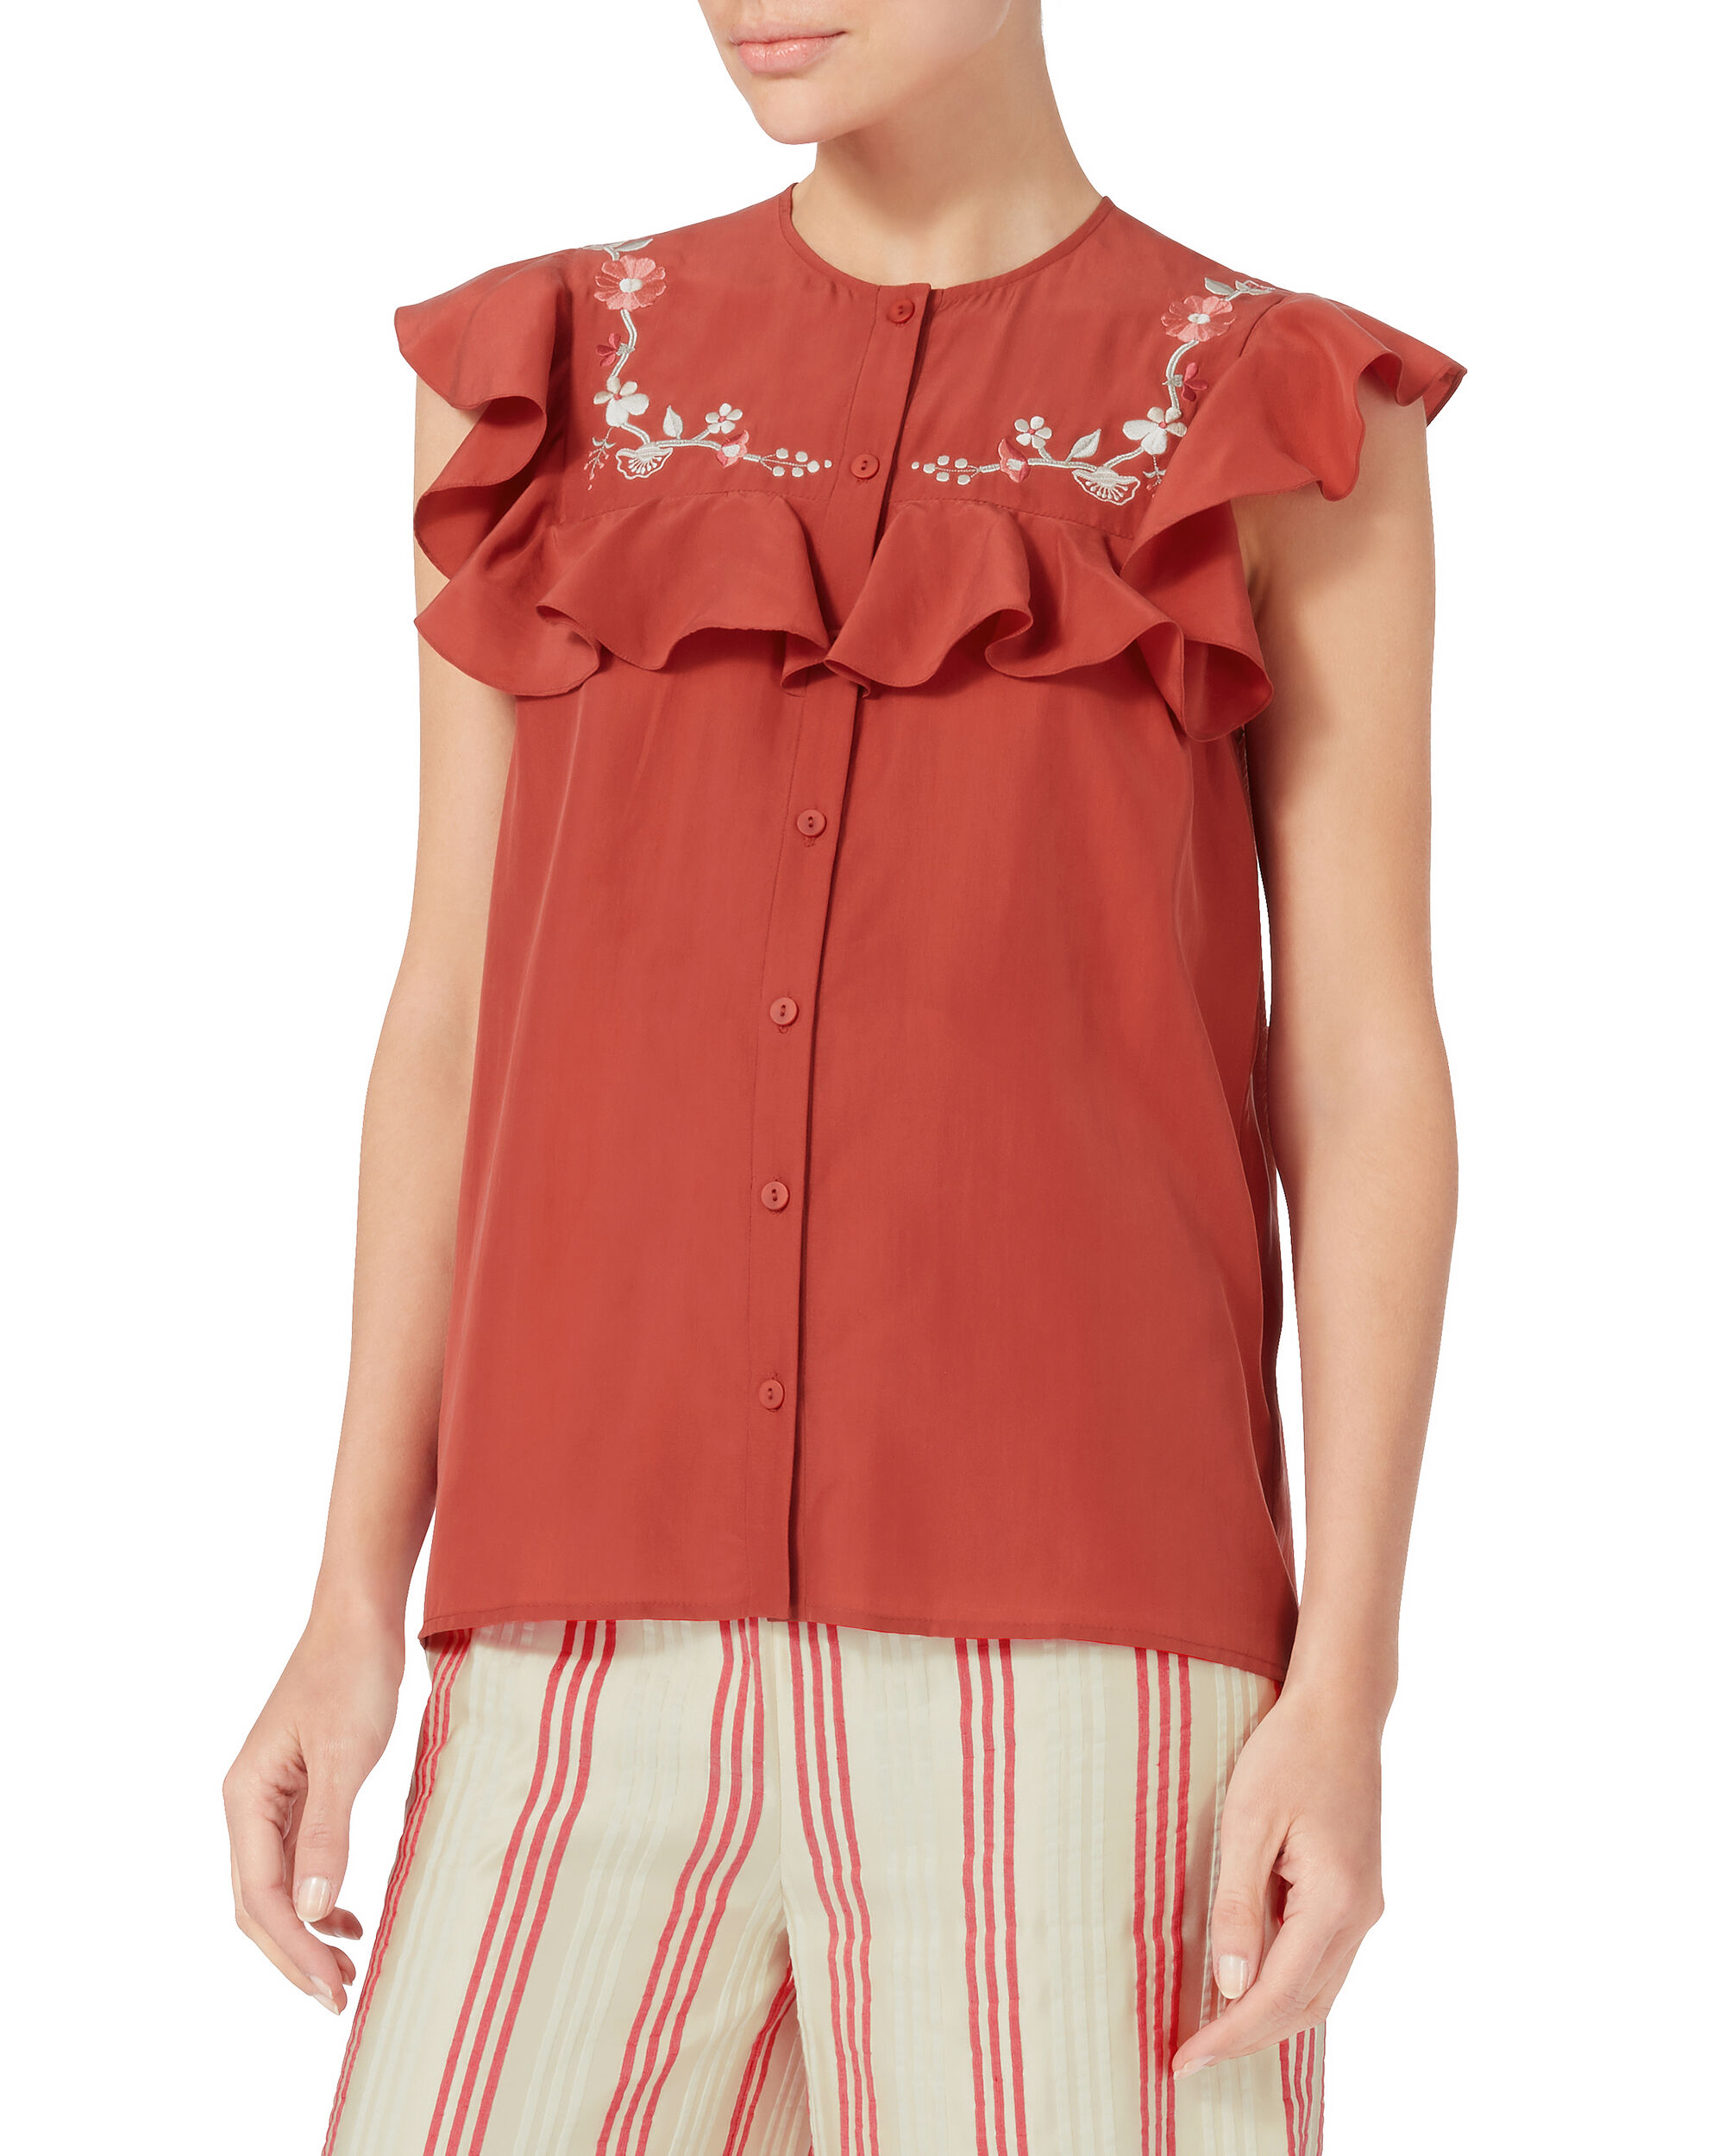 Casey Wreath Embroidered Top, RED, hi-res